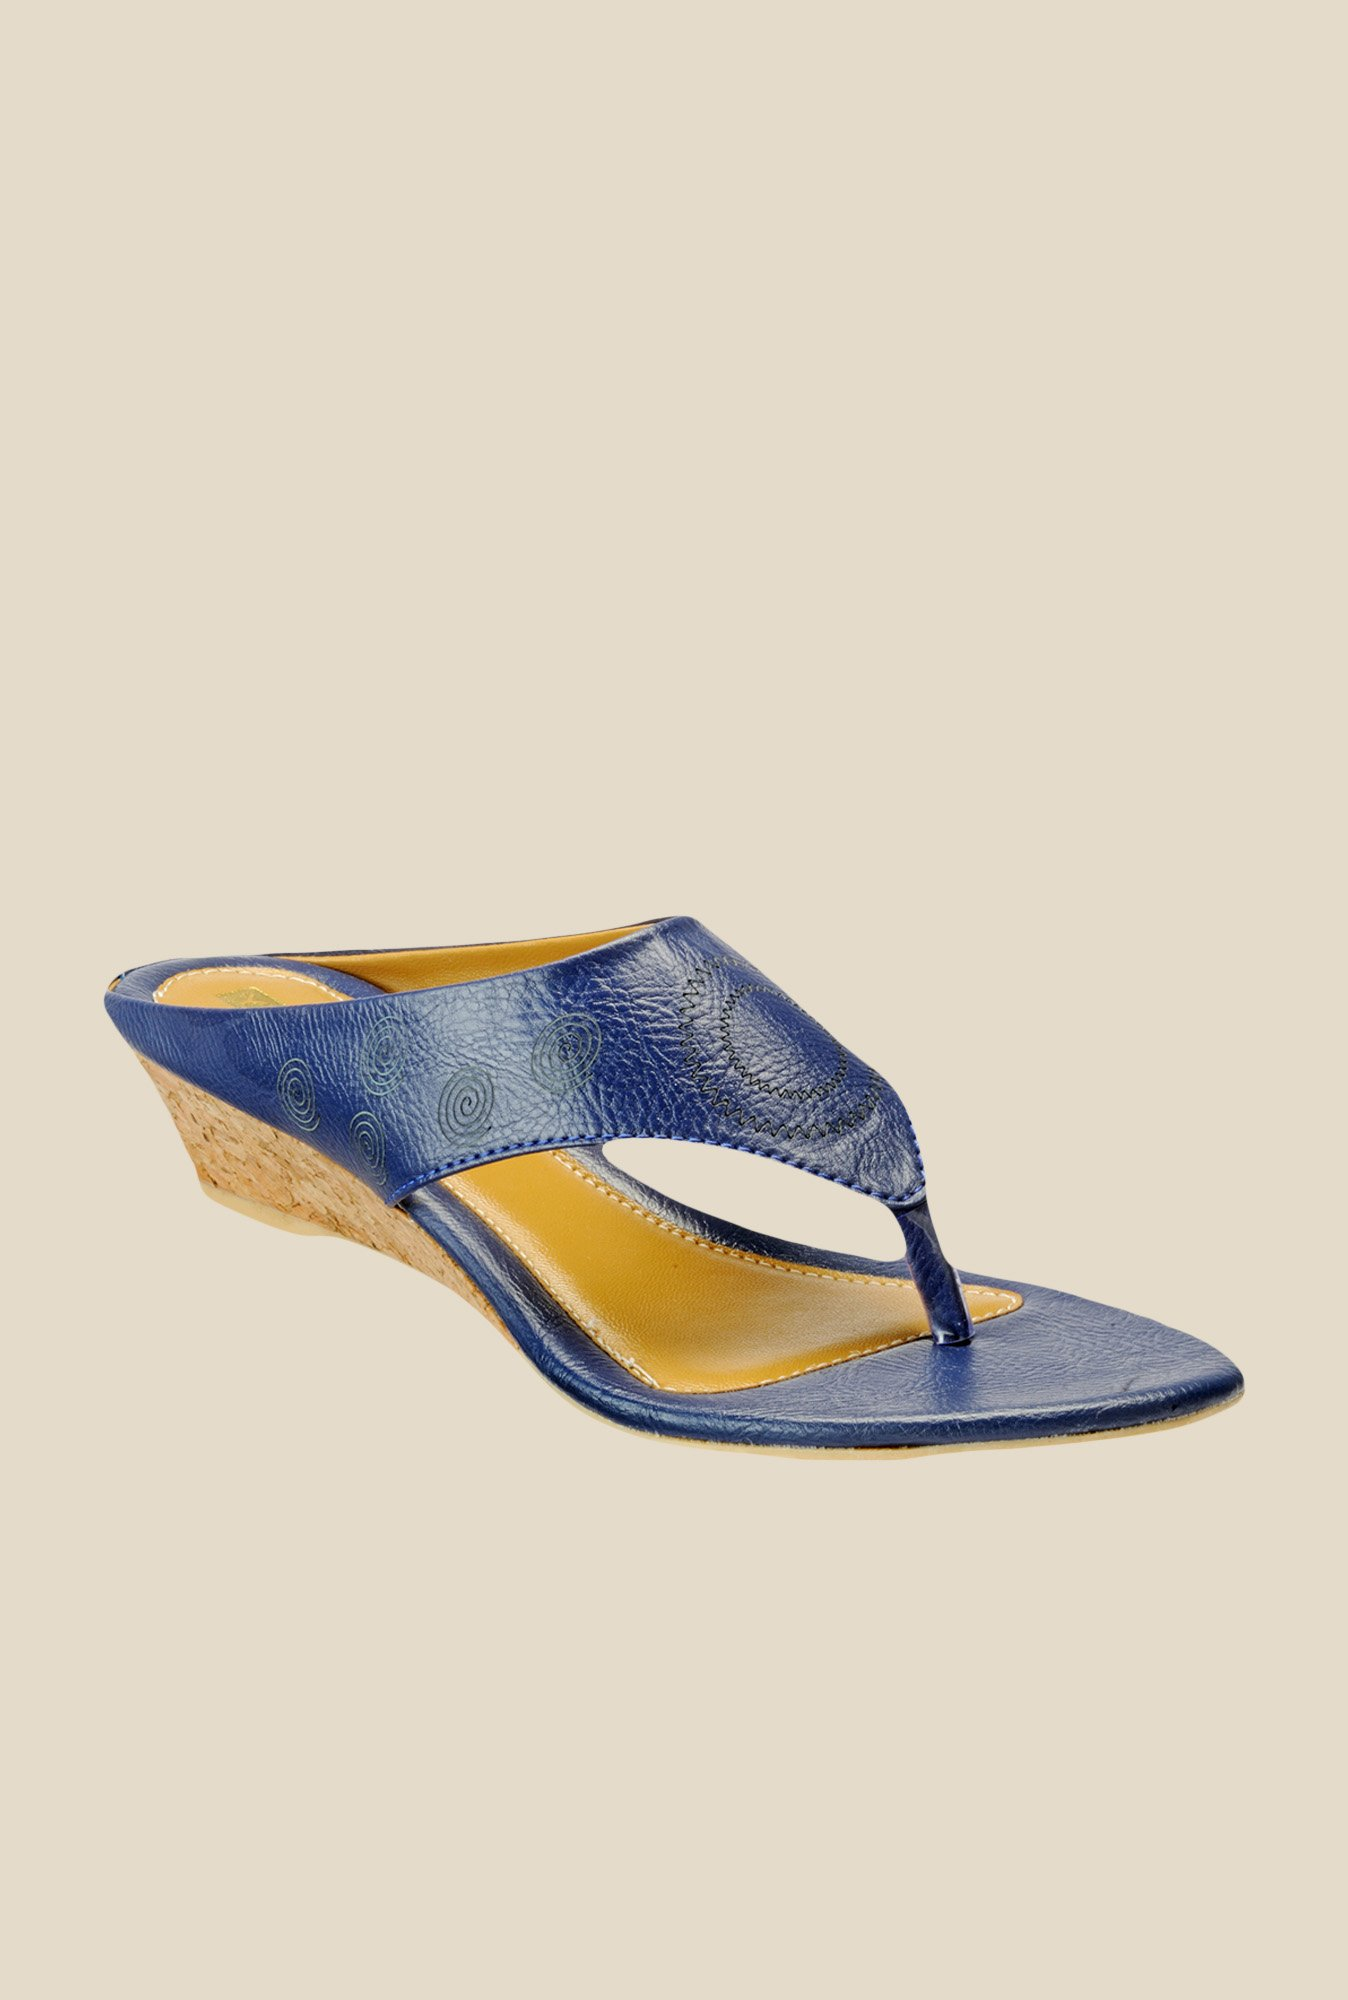 Yepme Navy Wedge Heeled Thong Sandals